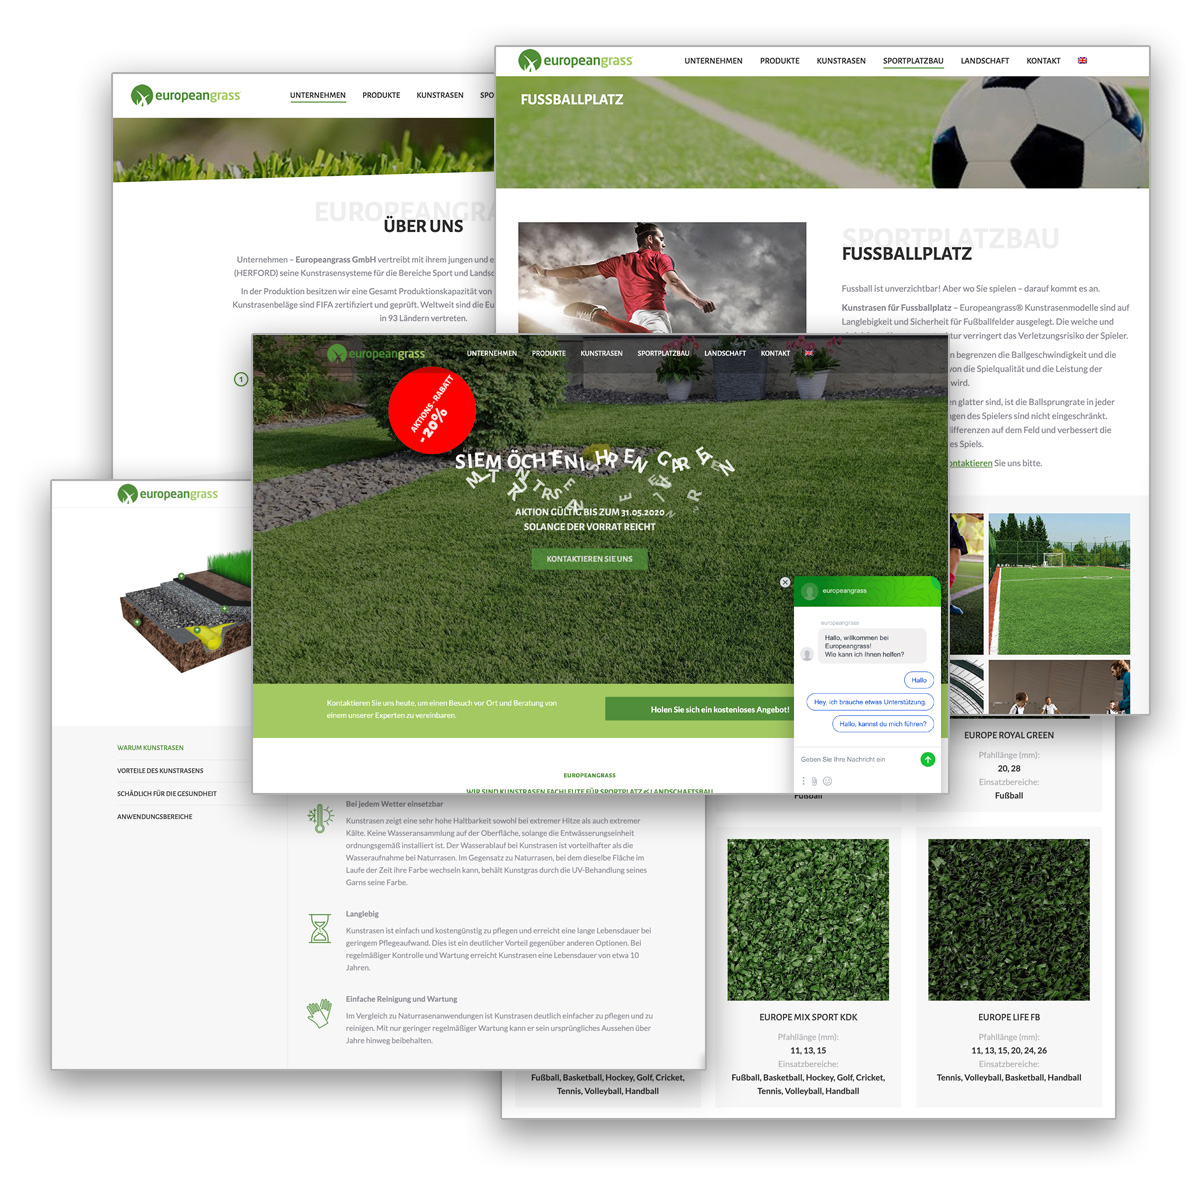 europeangrass website s